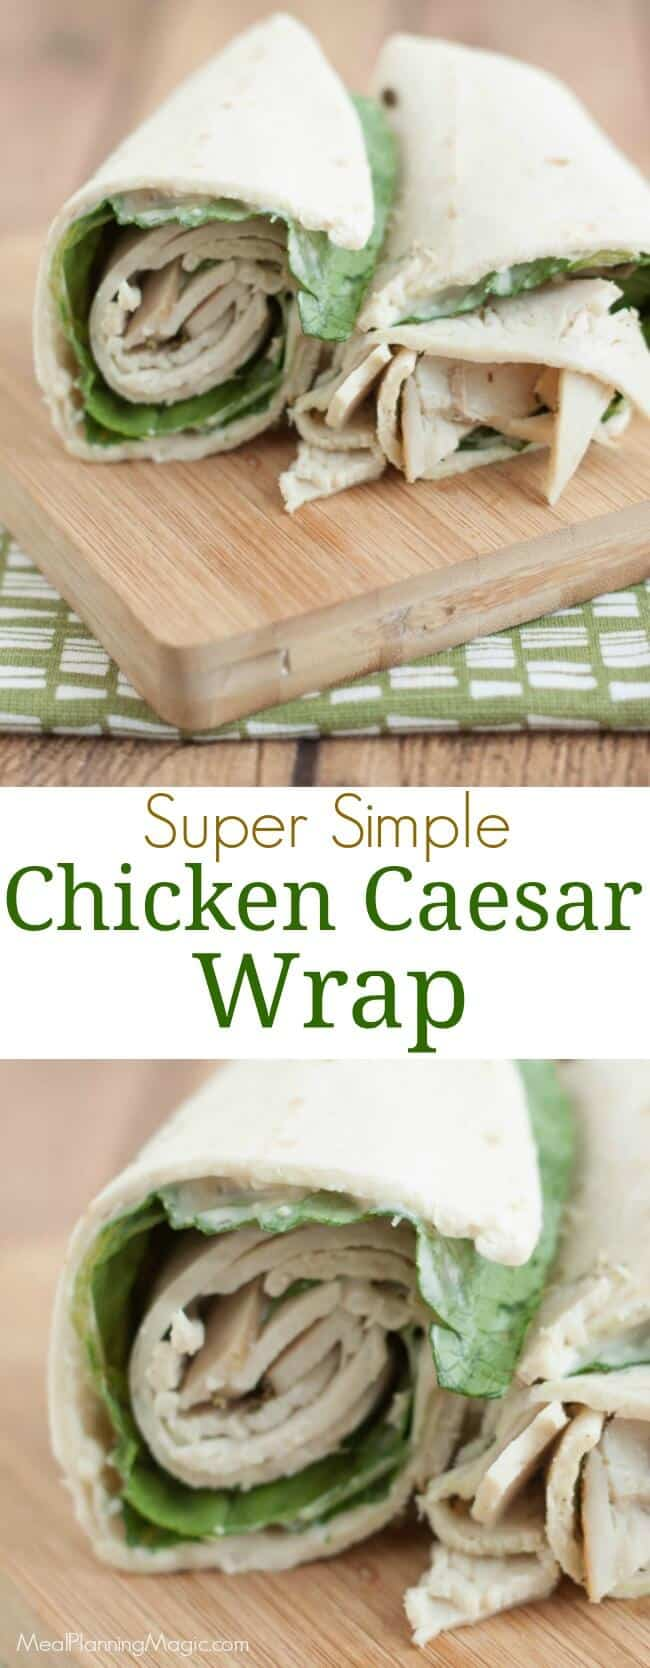 This Chicken Caesar salad wrap is a delicious sandwich wrap combining chicken lunch meat with a fresh Caesar salad! Perfect make ahead meal for lunch boxes!